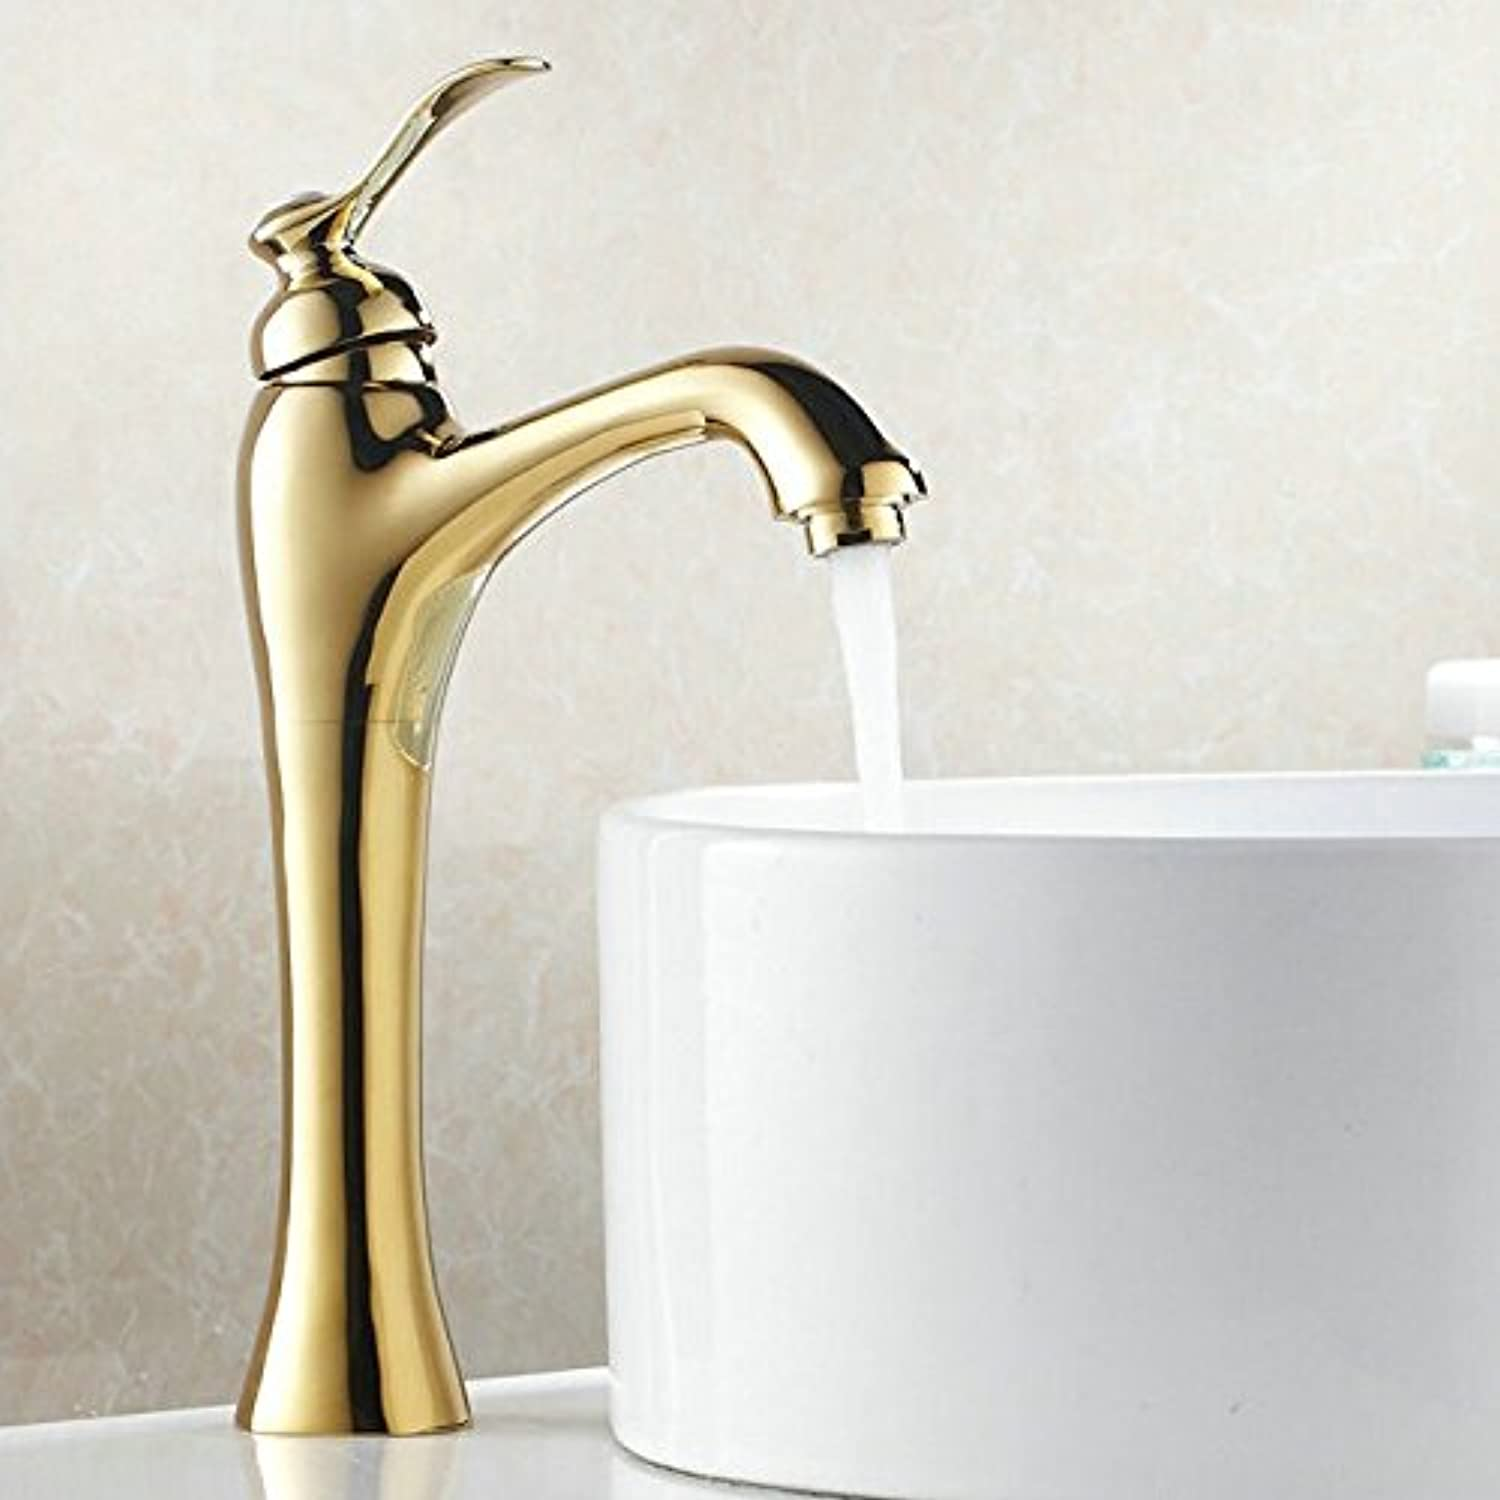 Makej Bathroom golden Finish Faucet golden Polished Bathroom Basin Faucet Mixer Tap Brass Faucet